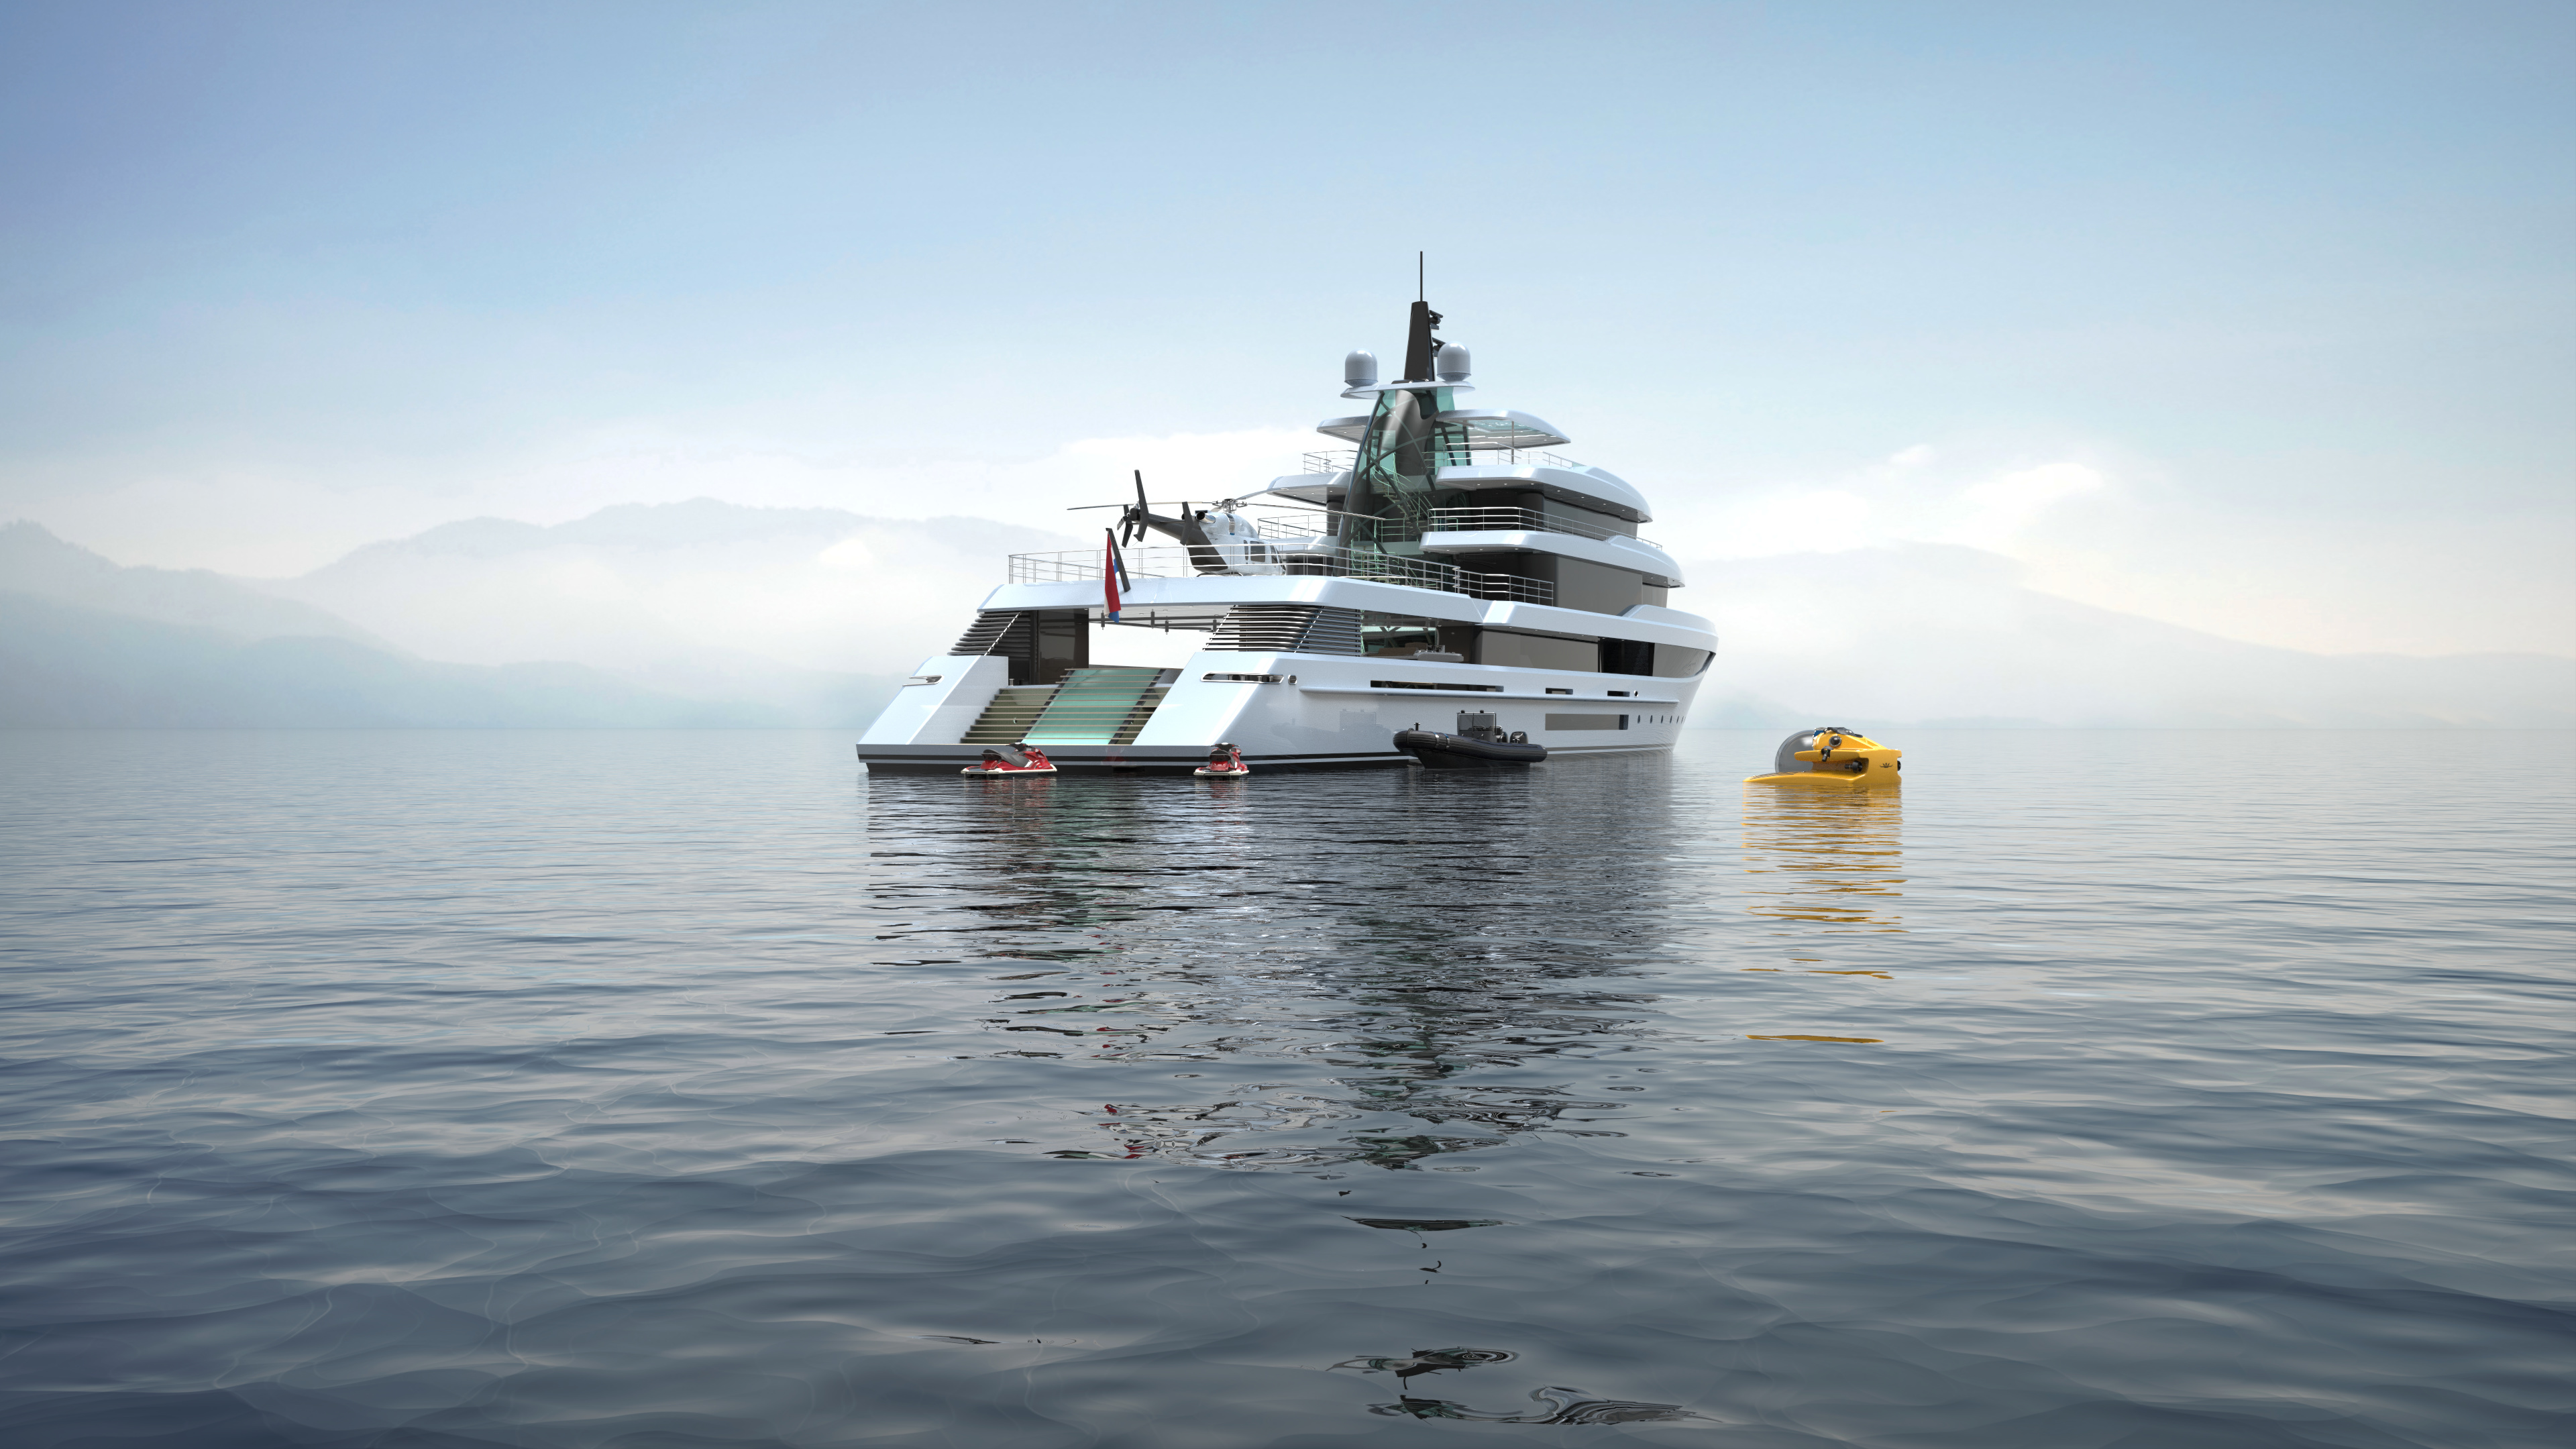 Project Crystal: A 70m Expedition Yacht from     superyachts com